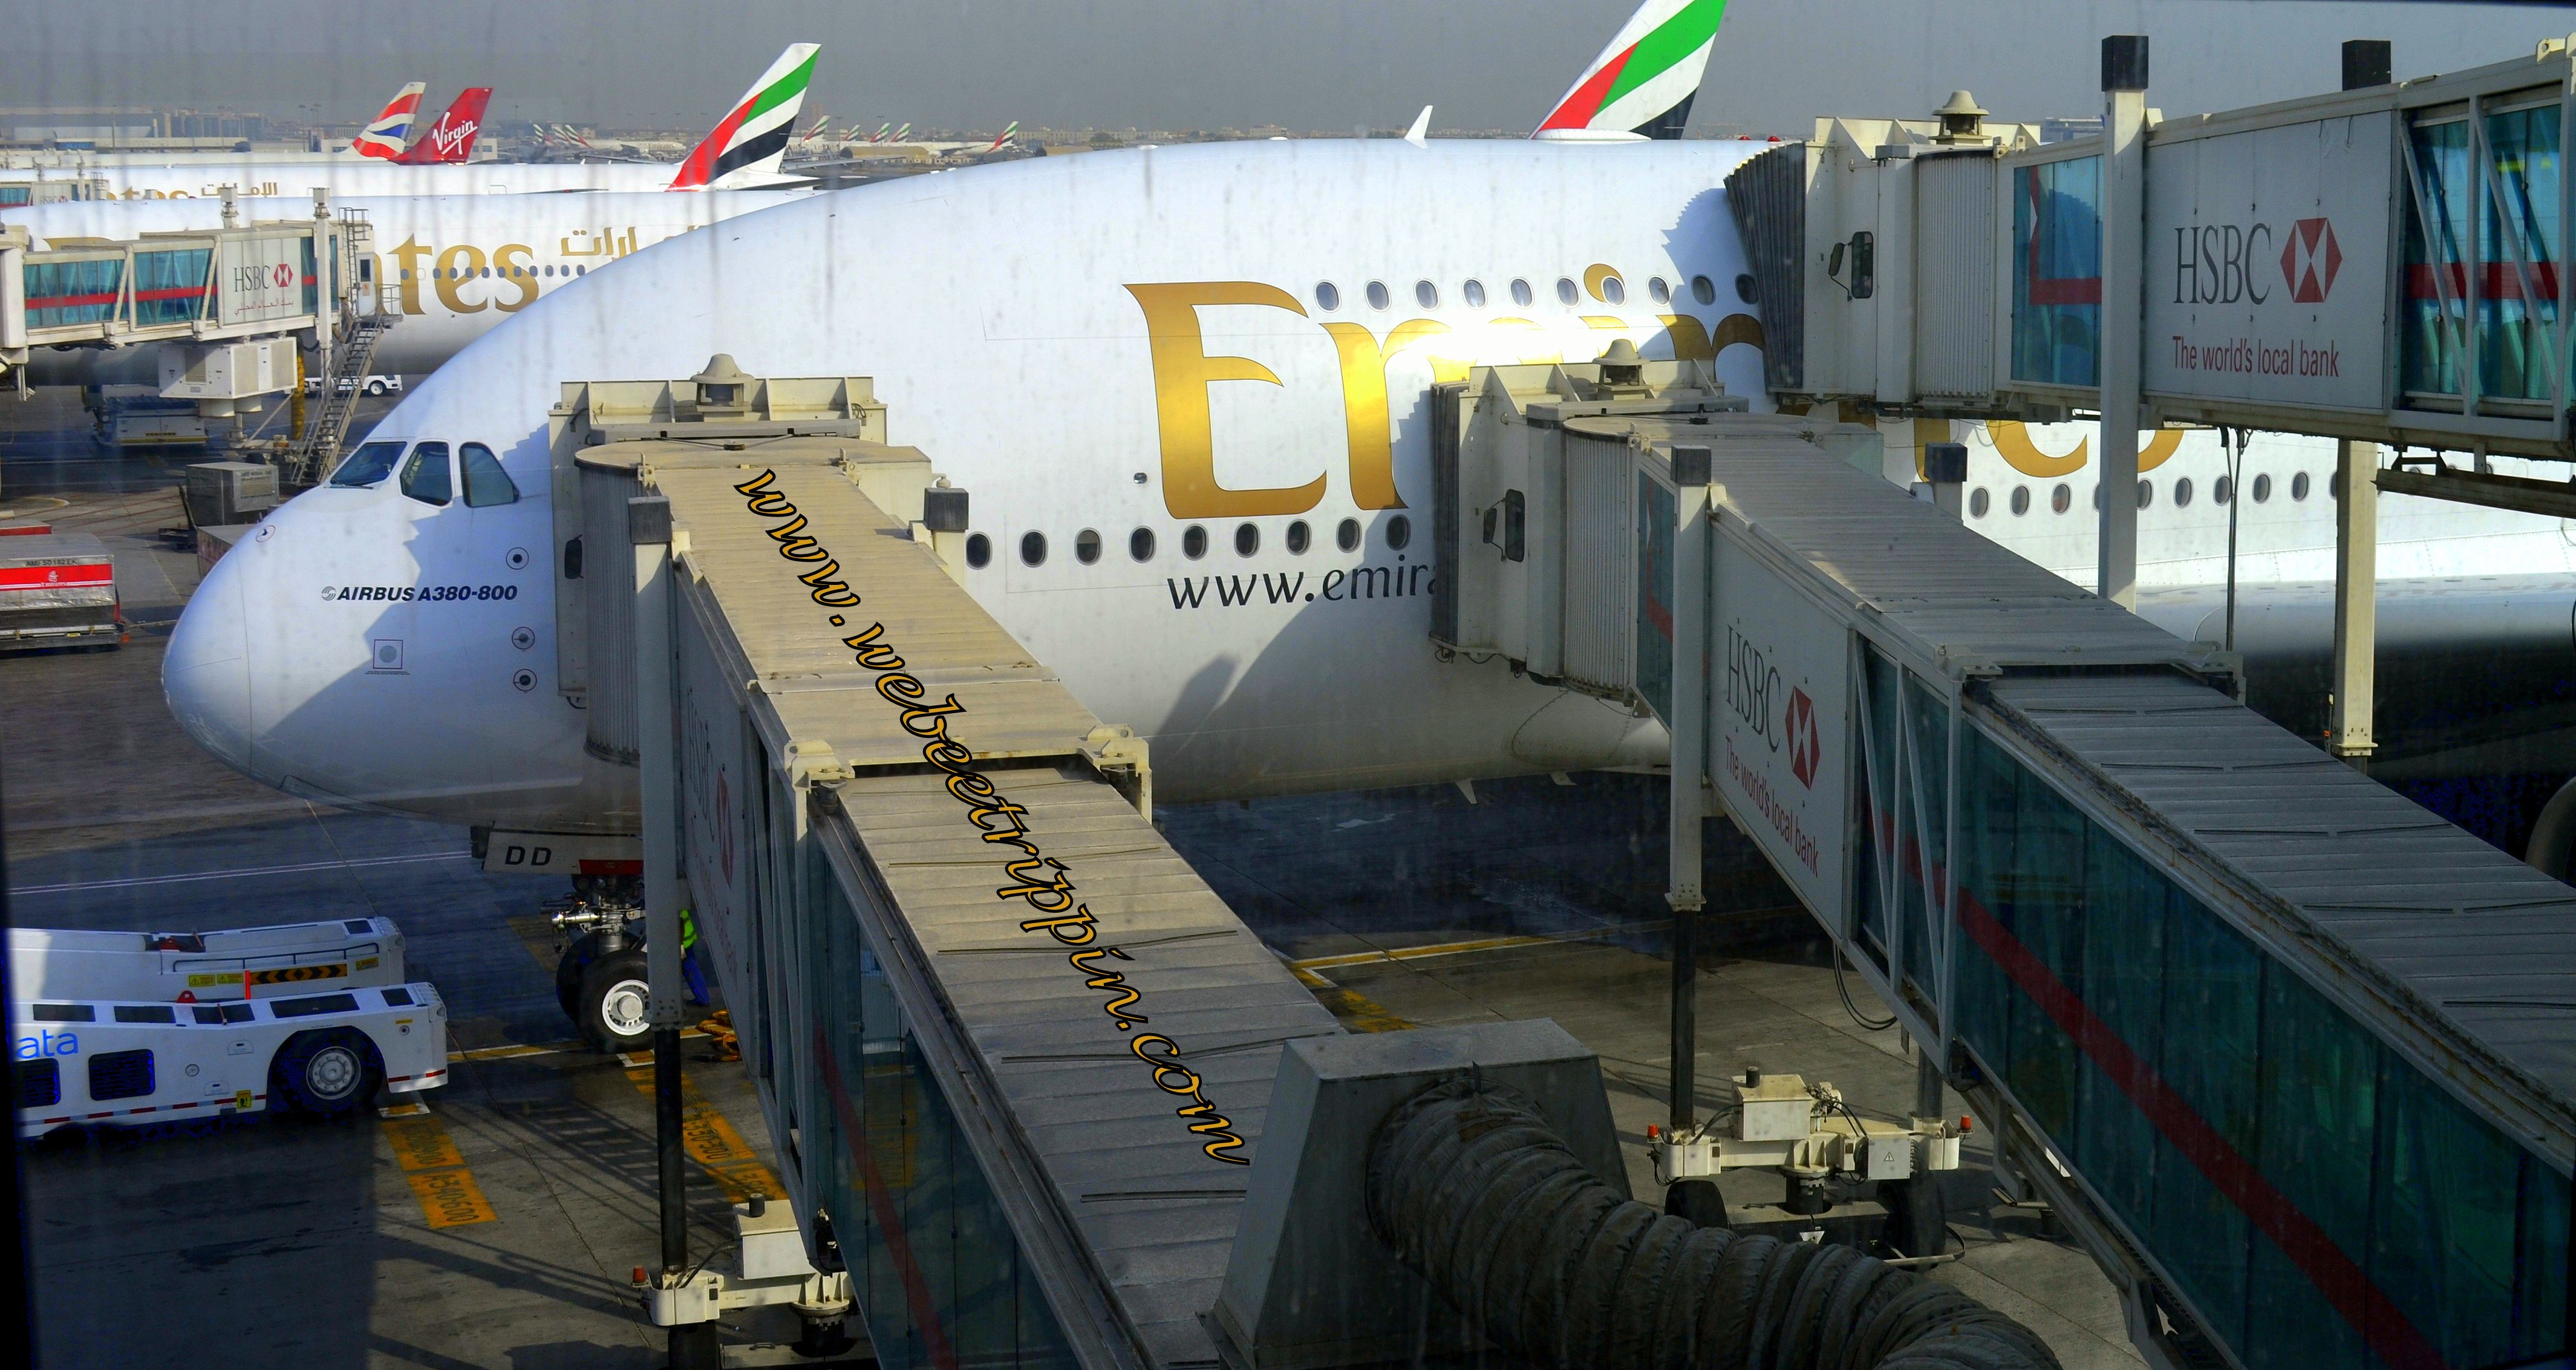 Emirates Airlines Double Decker Airbus 380 800 Preparing For Departure From Dubai It S 497 Seating Capacity Is Fully Loaded With Comfort Amenities In All Clas